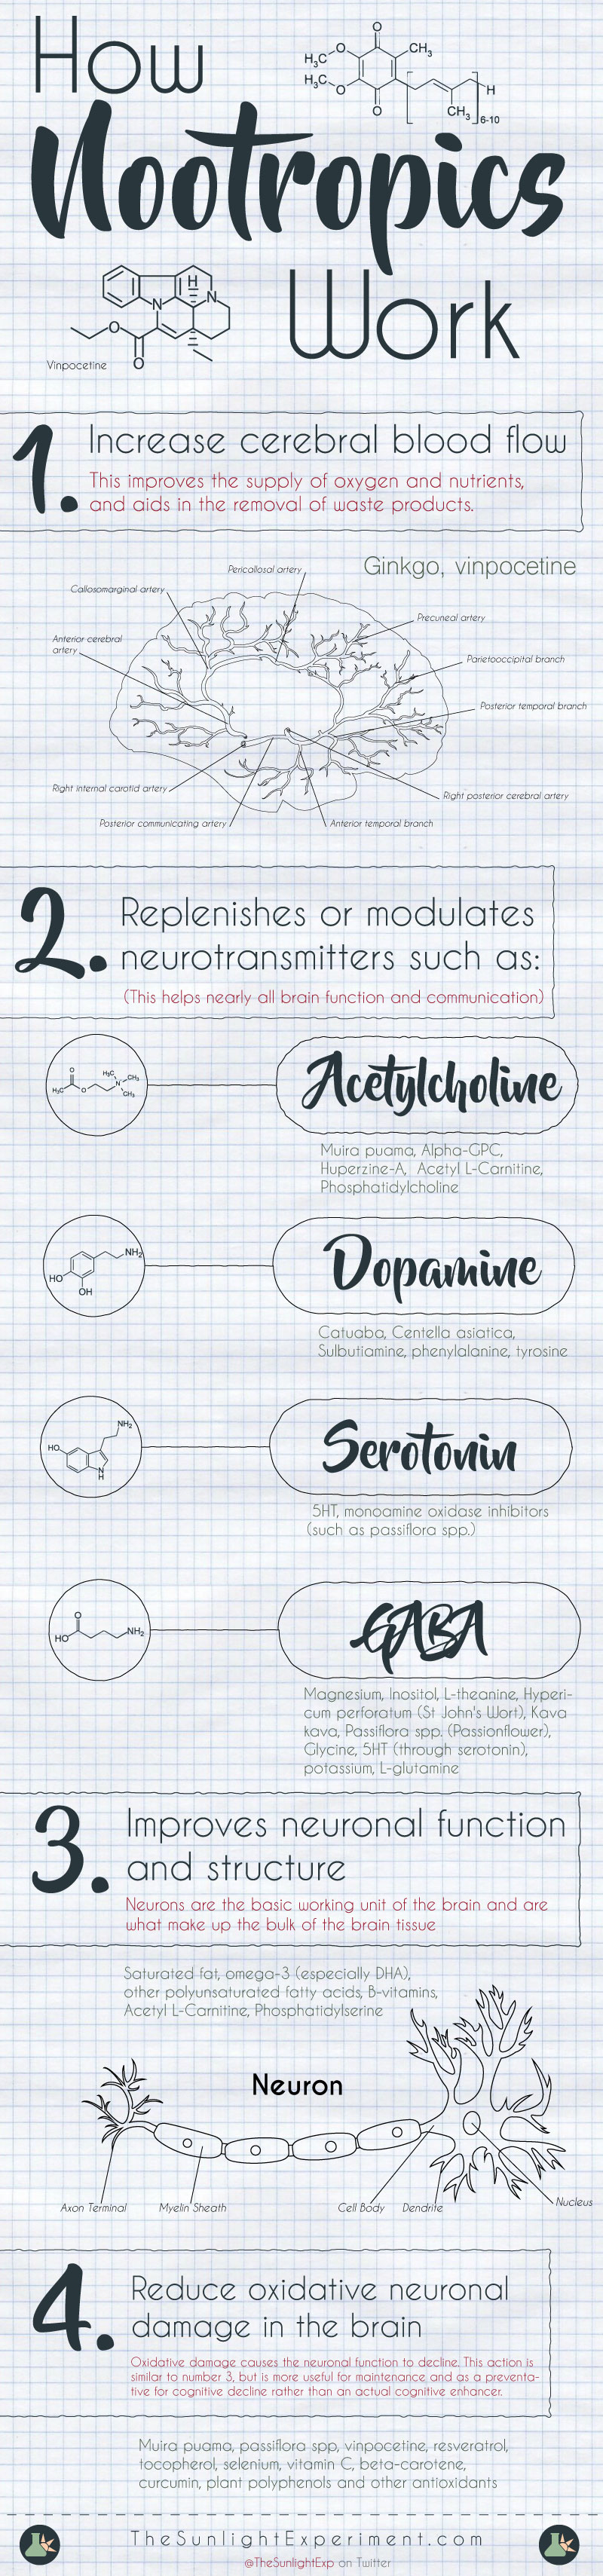 How nootropics work infographic